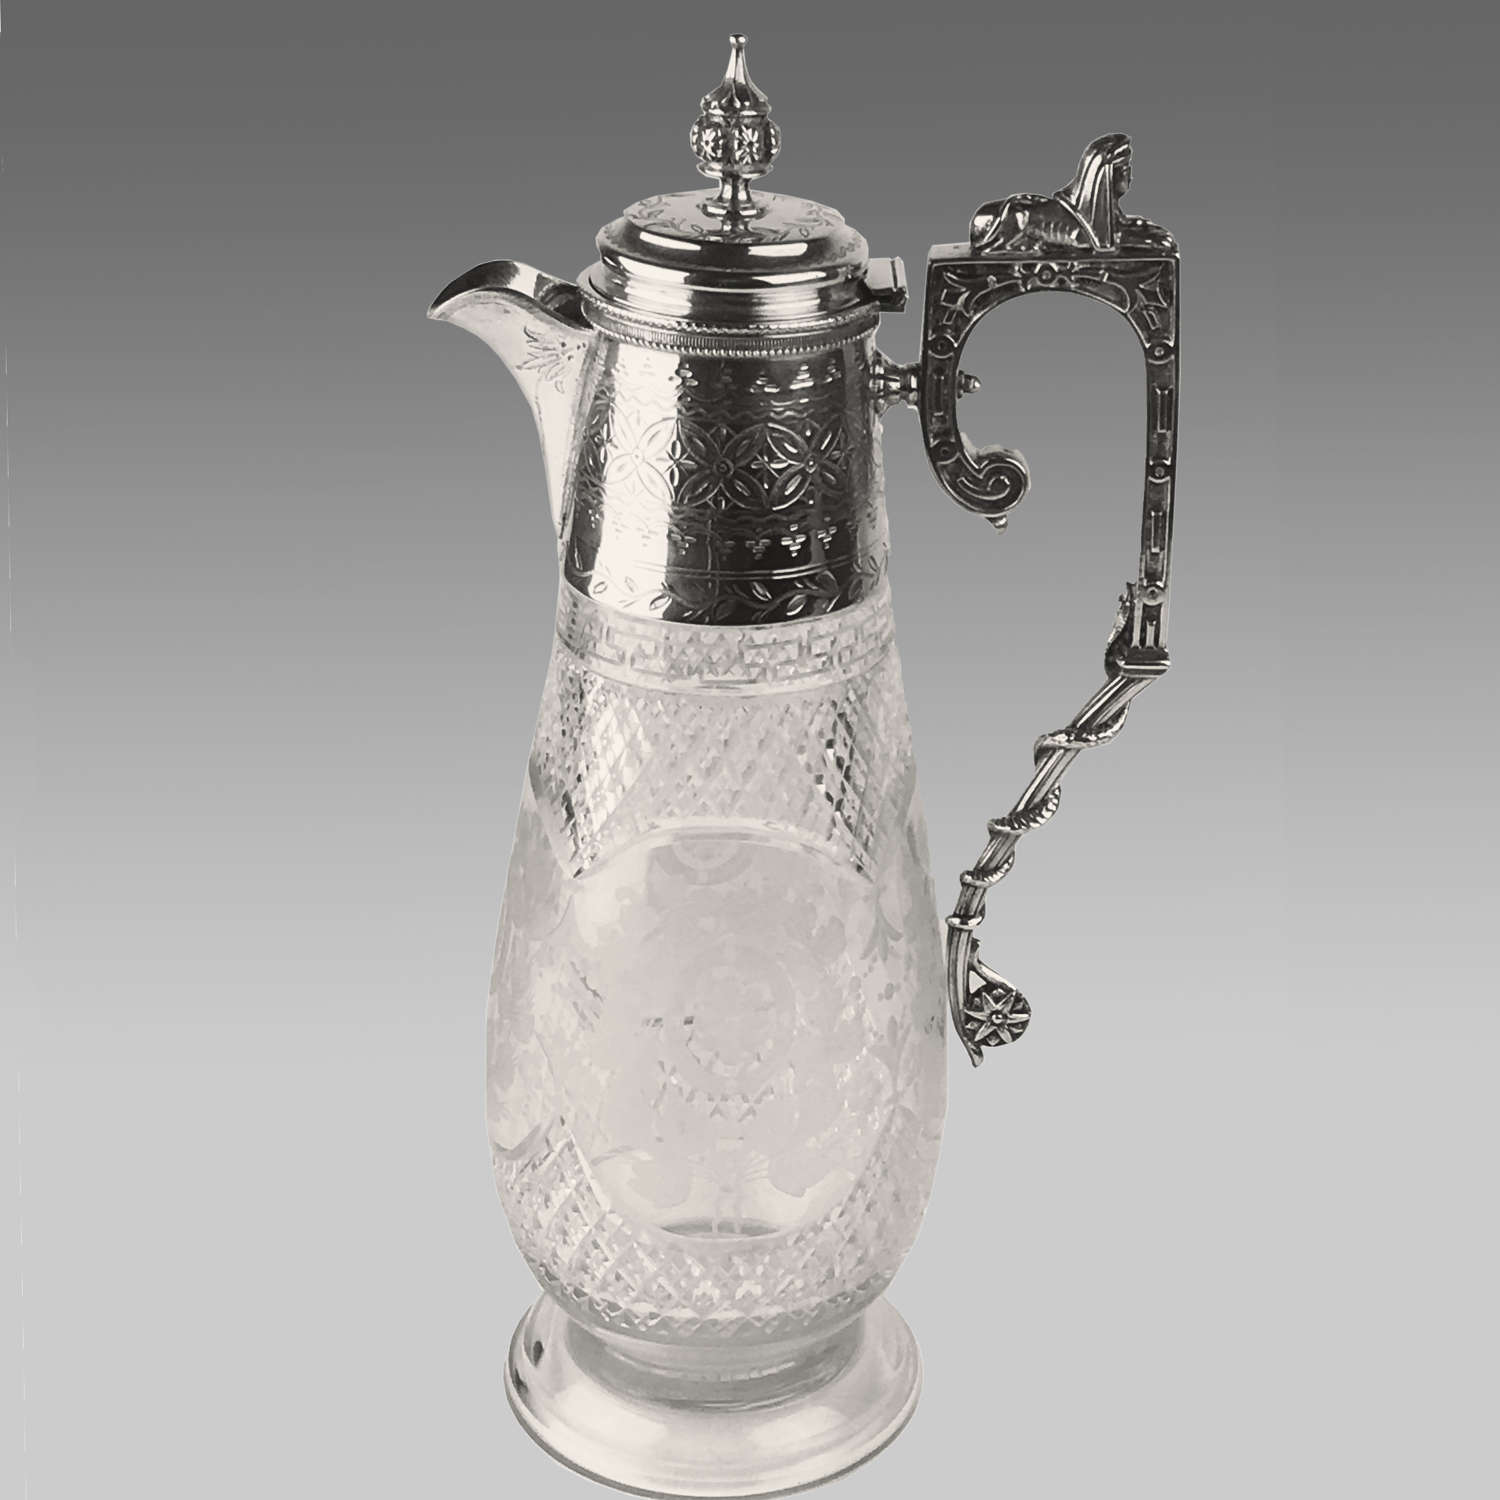 19th century silver-plated claret jug